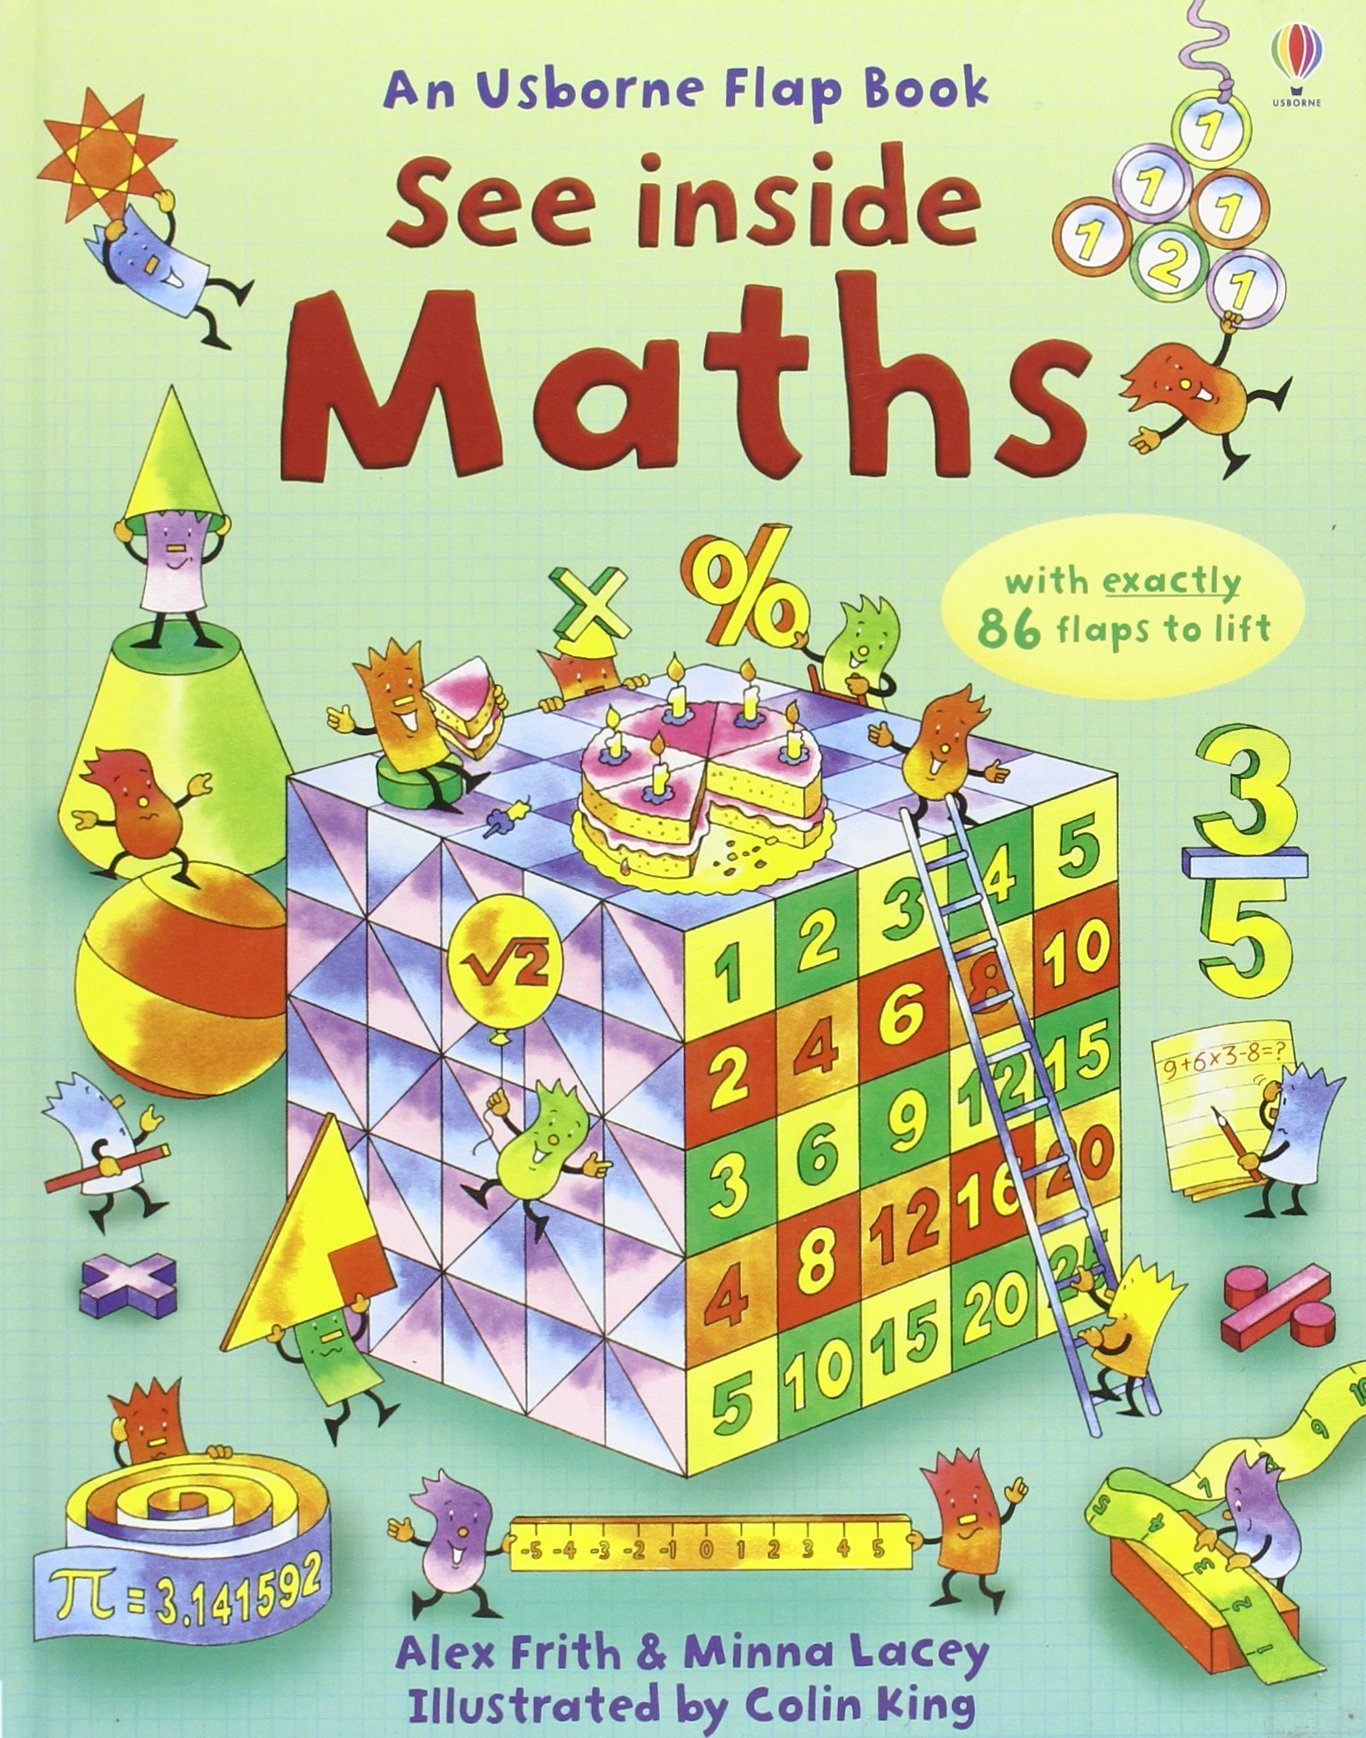 Maths (See Inside): Amazon.co.uk: Alex Frith, Minna Lacey, Colin ...